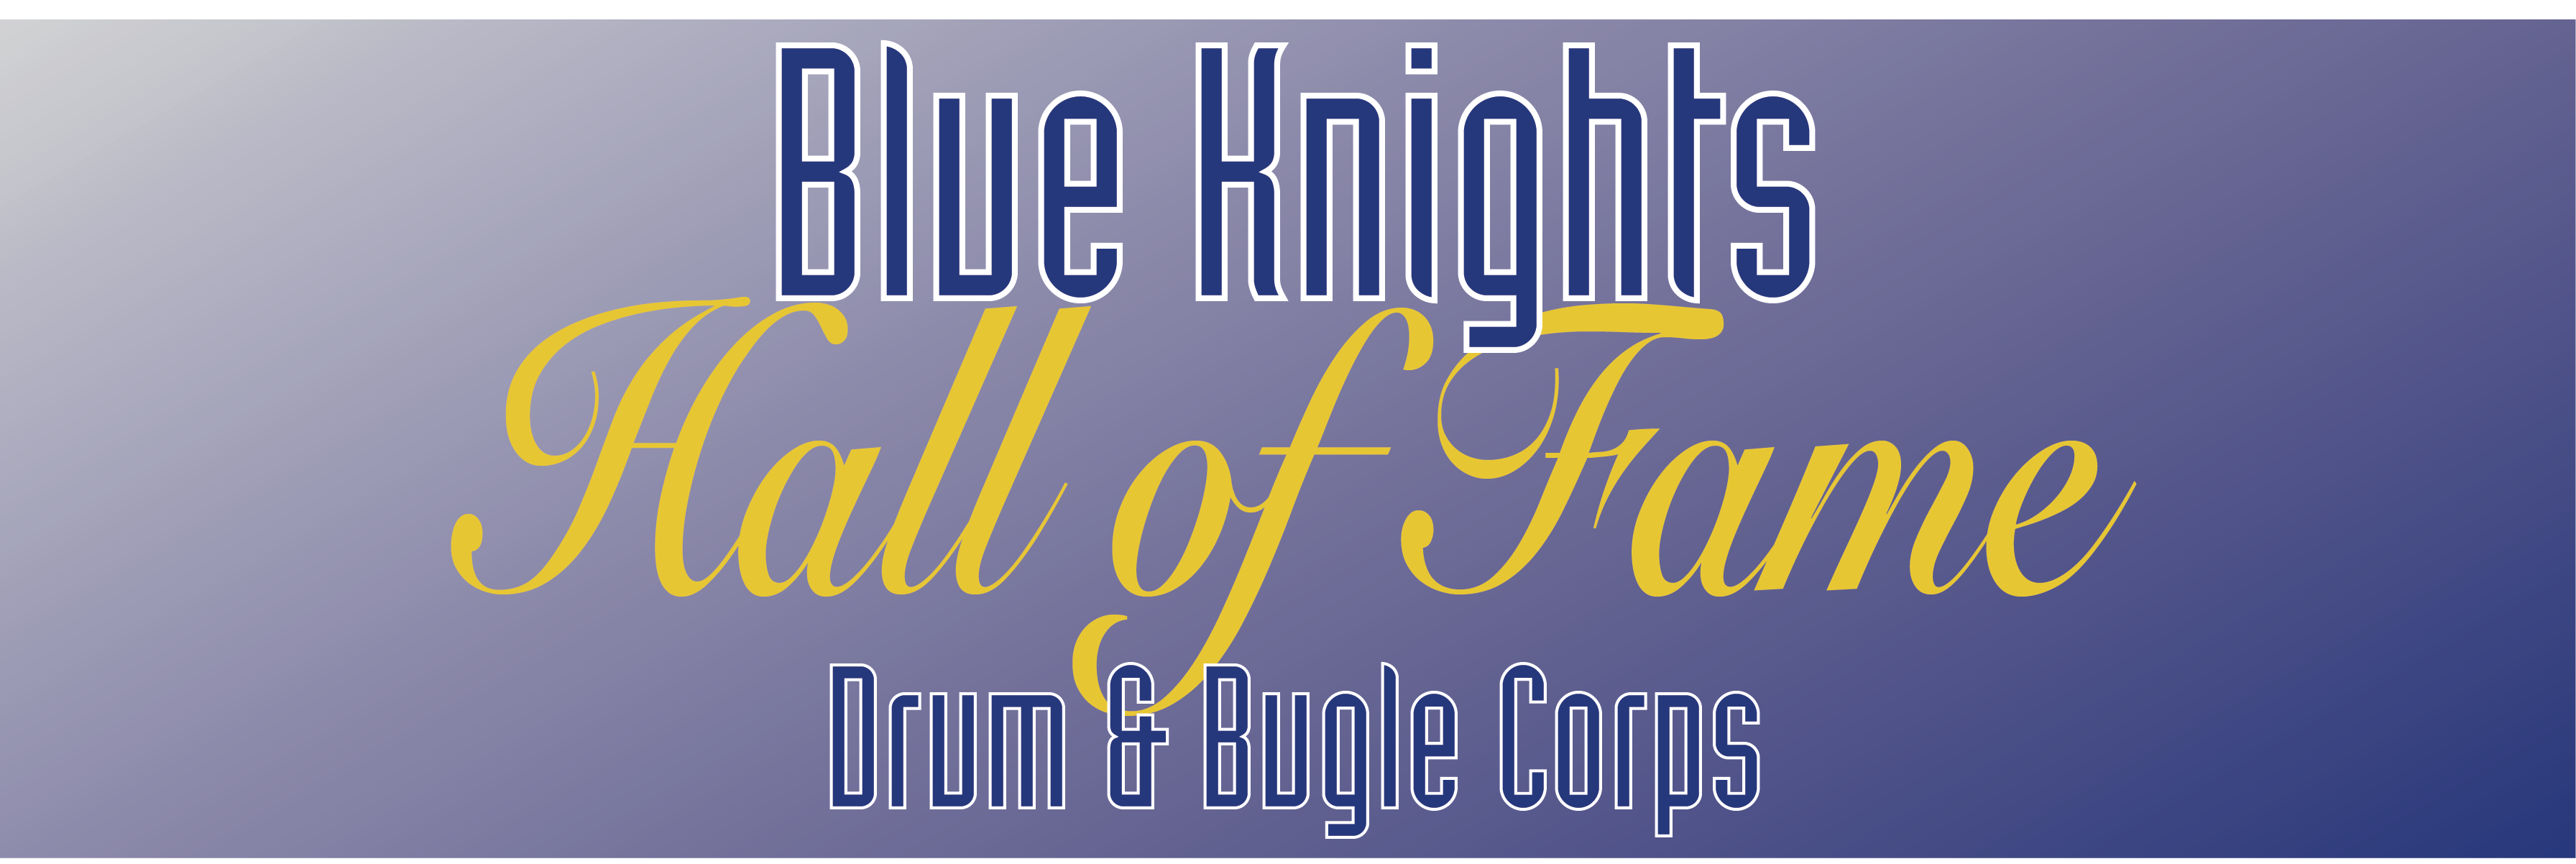 BK hall of fame feature